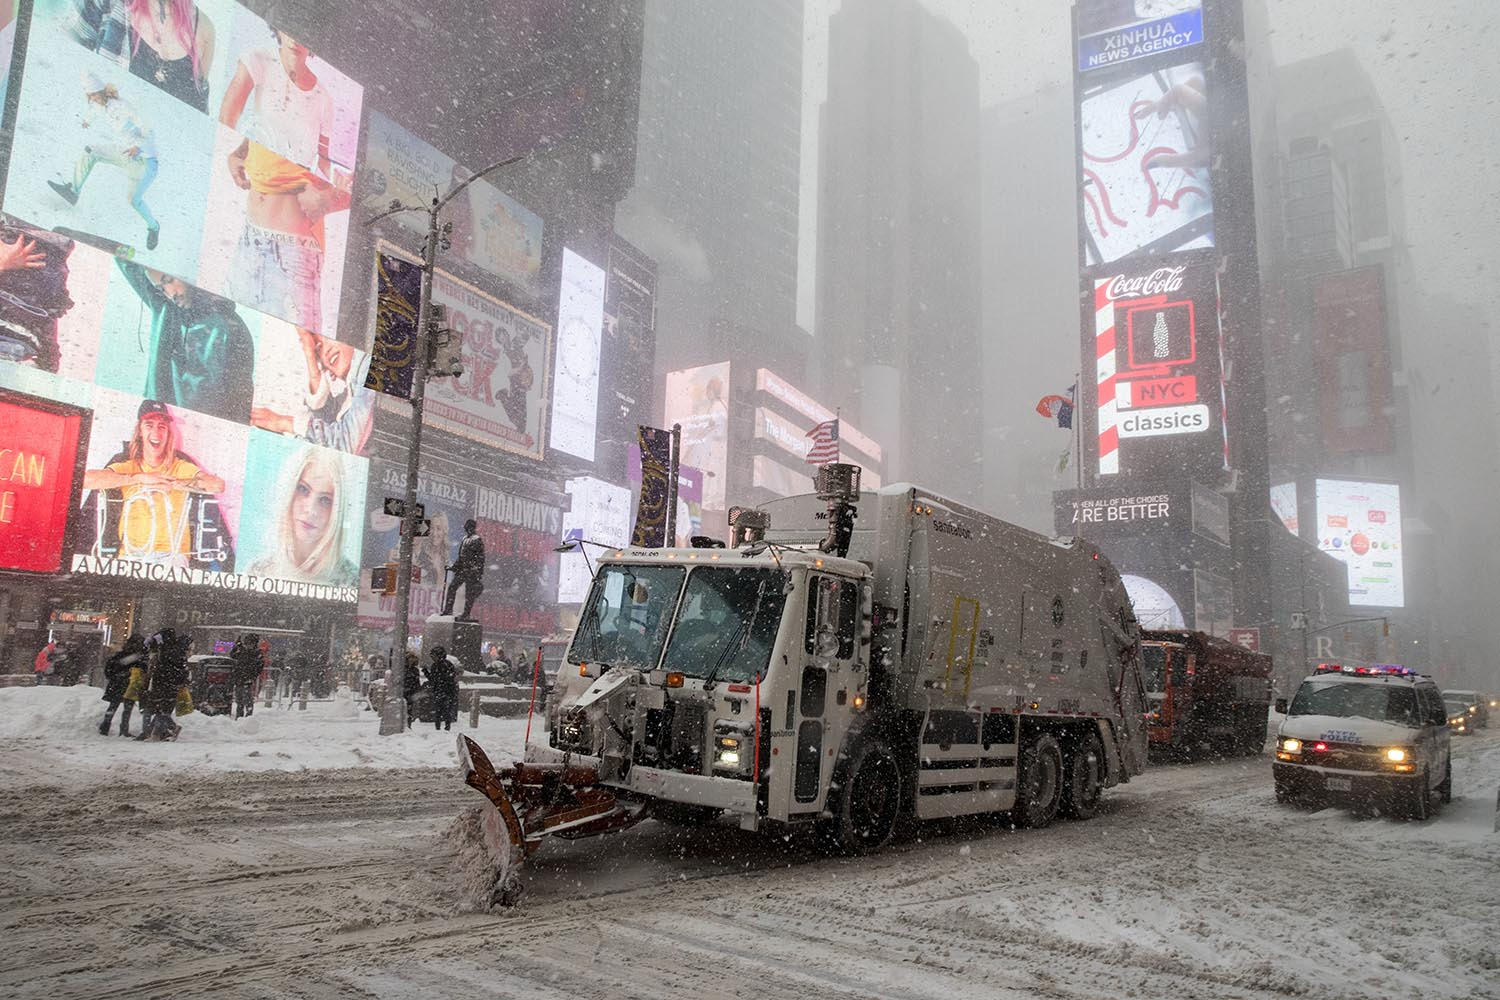 "<div class=""meta image-caption""><div class=""origin-logo origin-image ap""><span>AP</span></div><span class=""caption-text"">A snow plow clears snow off Broadway in New York's Times Square, Thursday, Jan. 4, 2018. (AP Photo/Mary Altaffer)</span></div>"